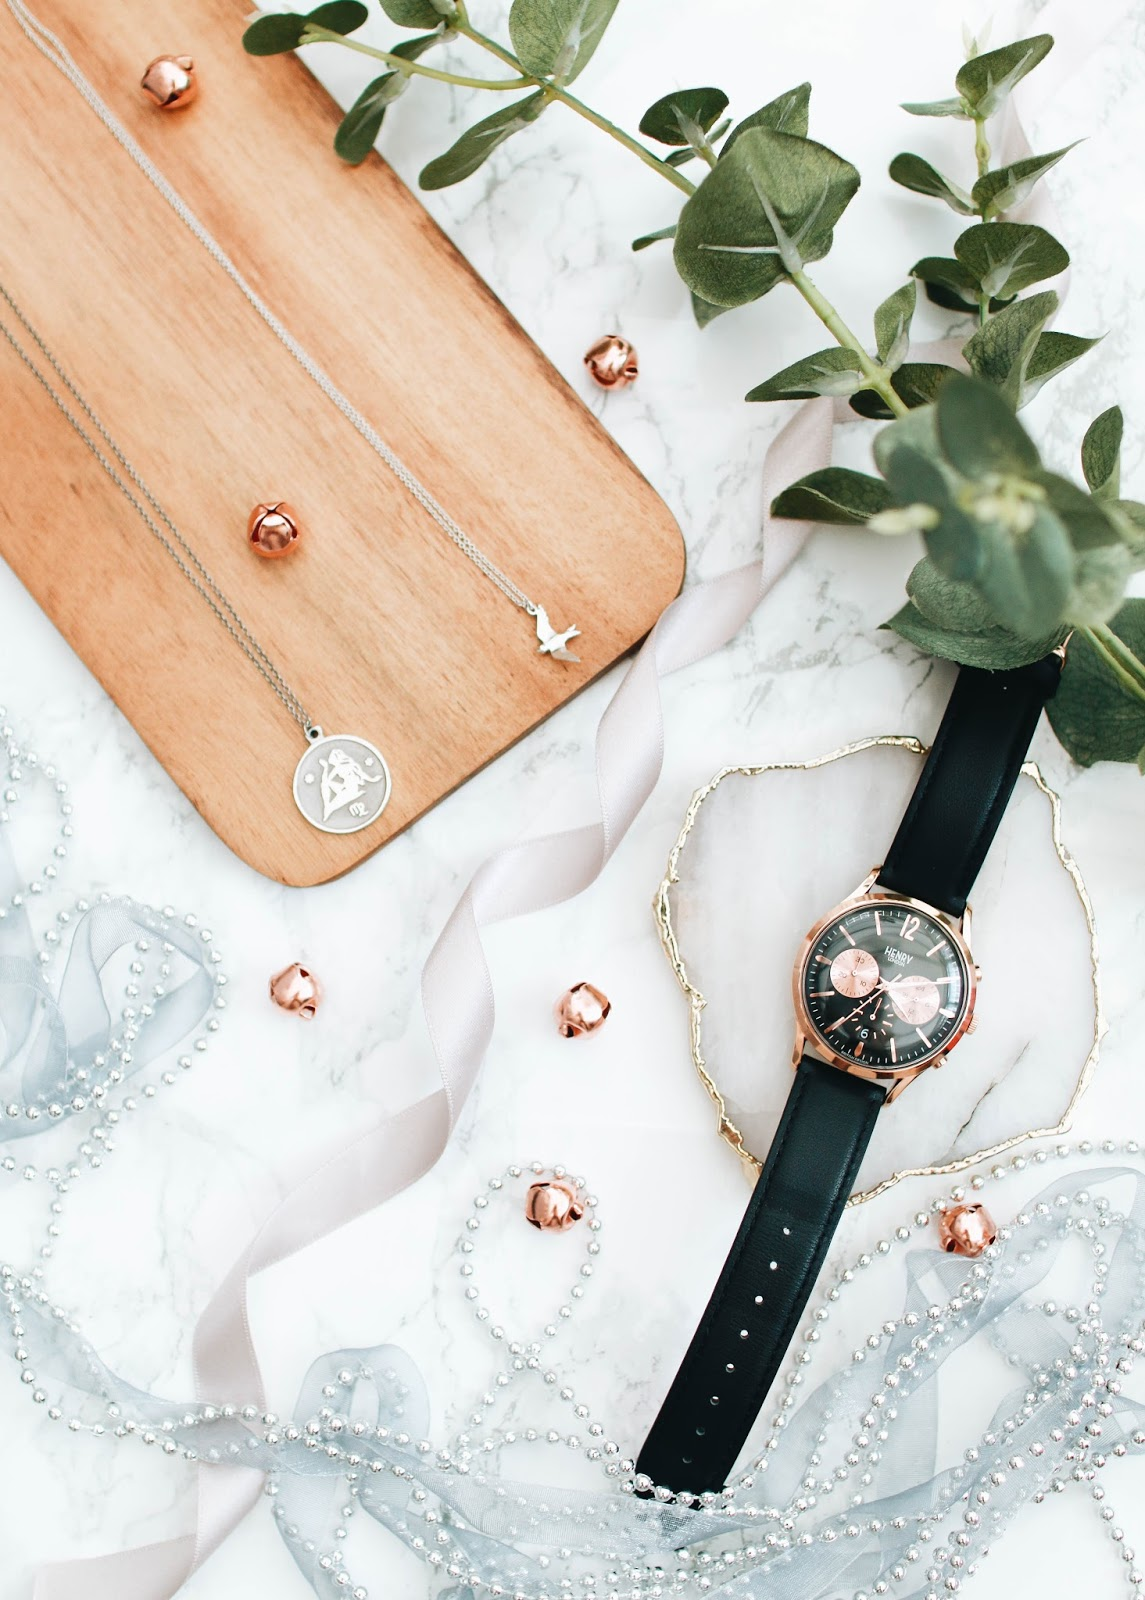 everyday accessories, henry london, alex monroe, anna saccone, necklace, watch, rose gold, silver, jewellery, fashion, fashion blogger, forever september, lifestyle, lifestyle blogger, beauty, beauty blogger